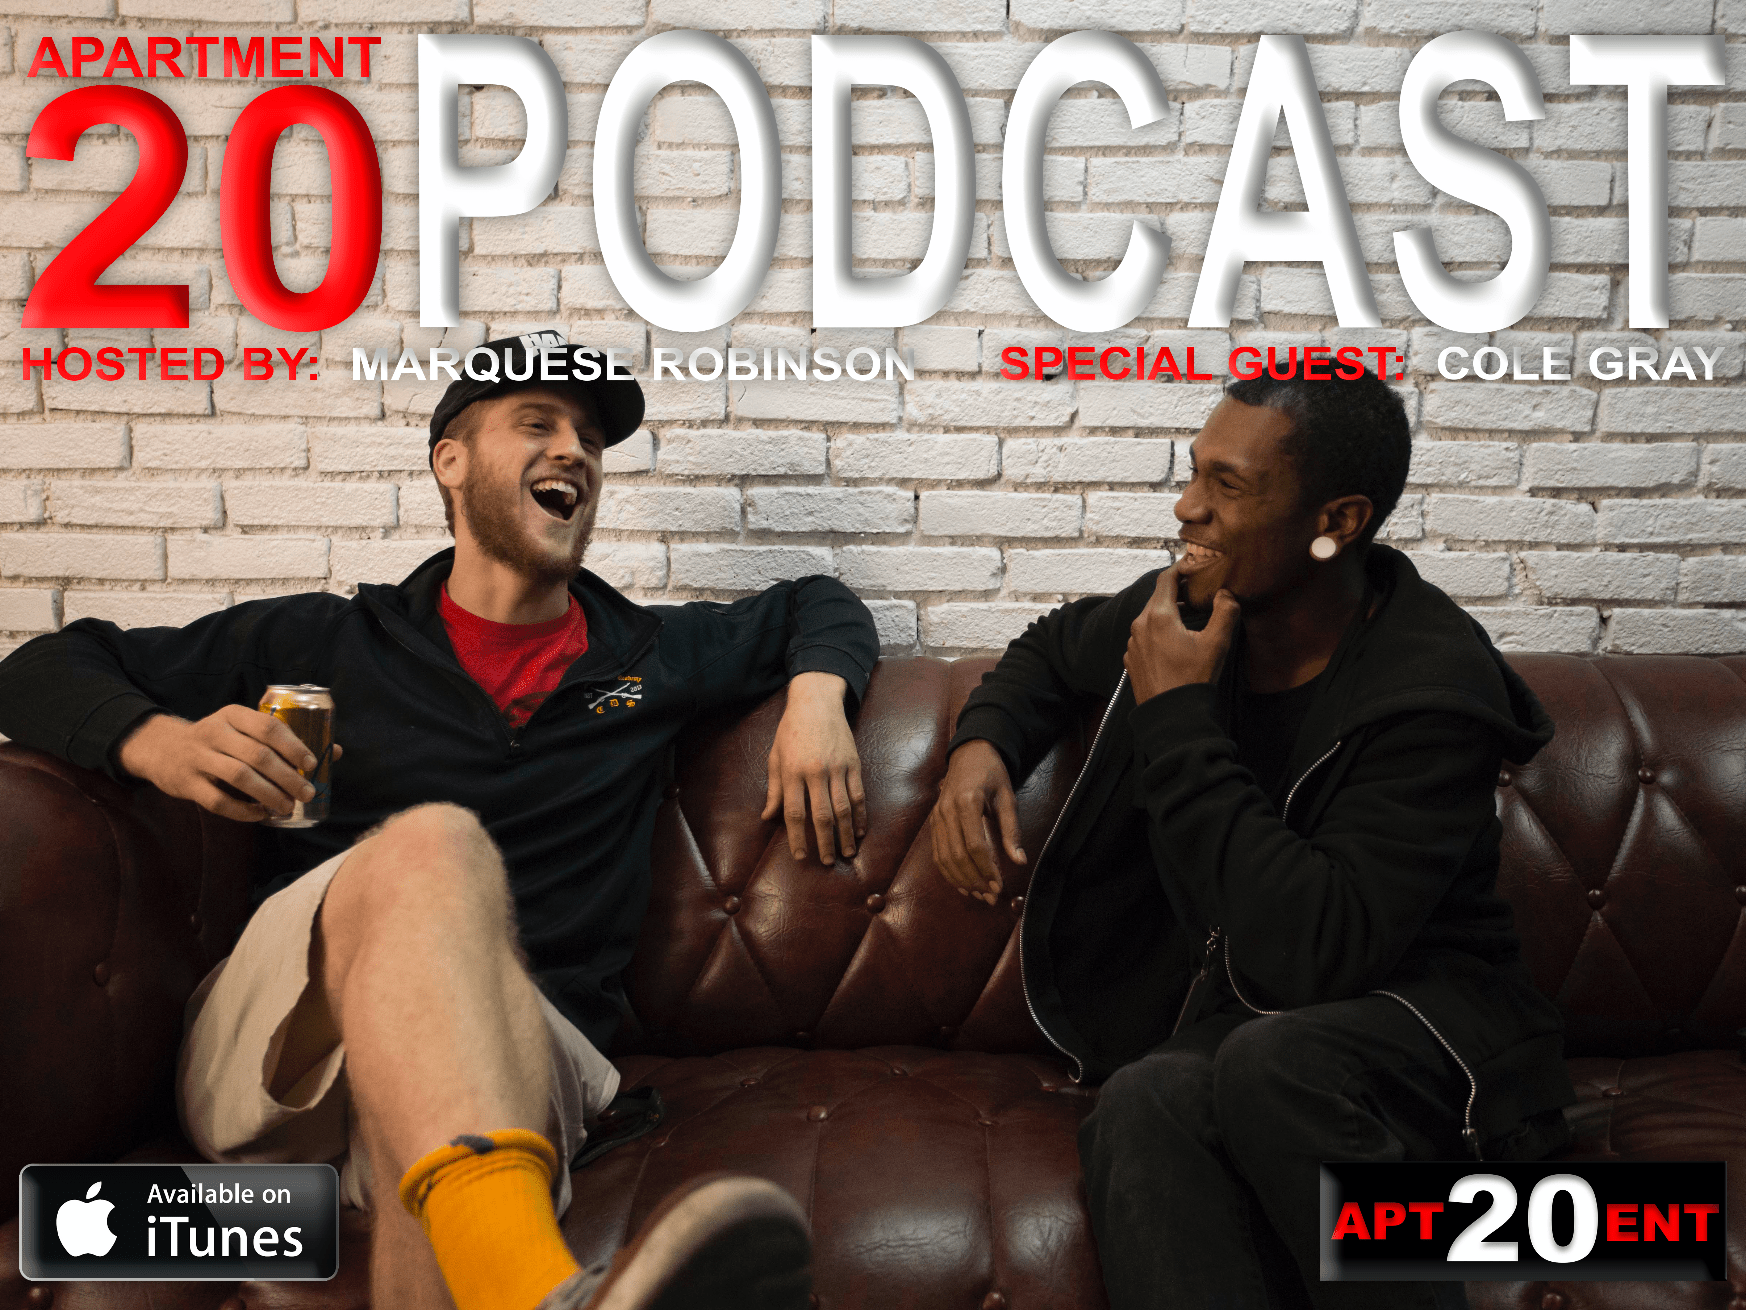 Apartment 20 Podcast: Cole Gray